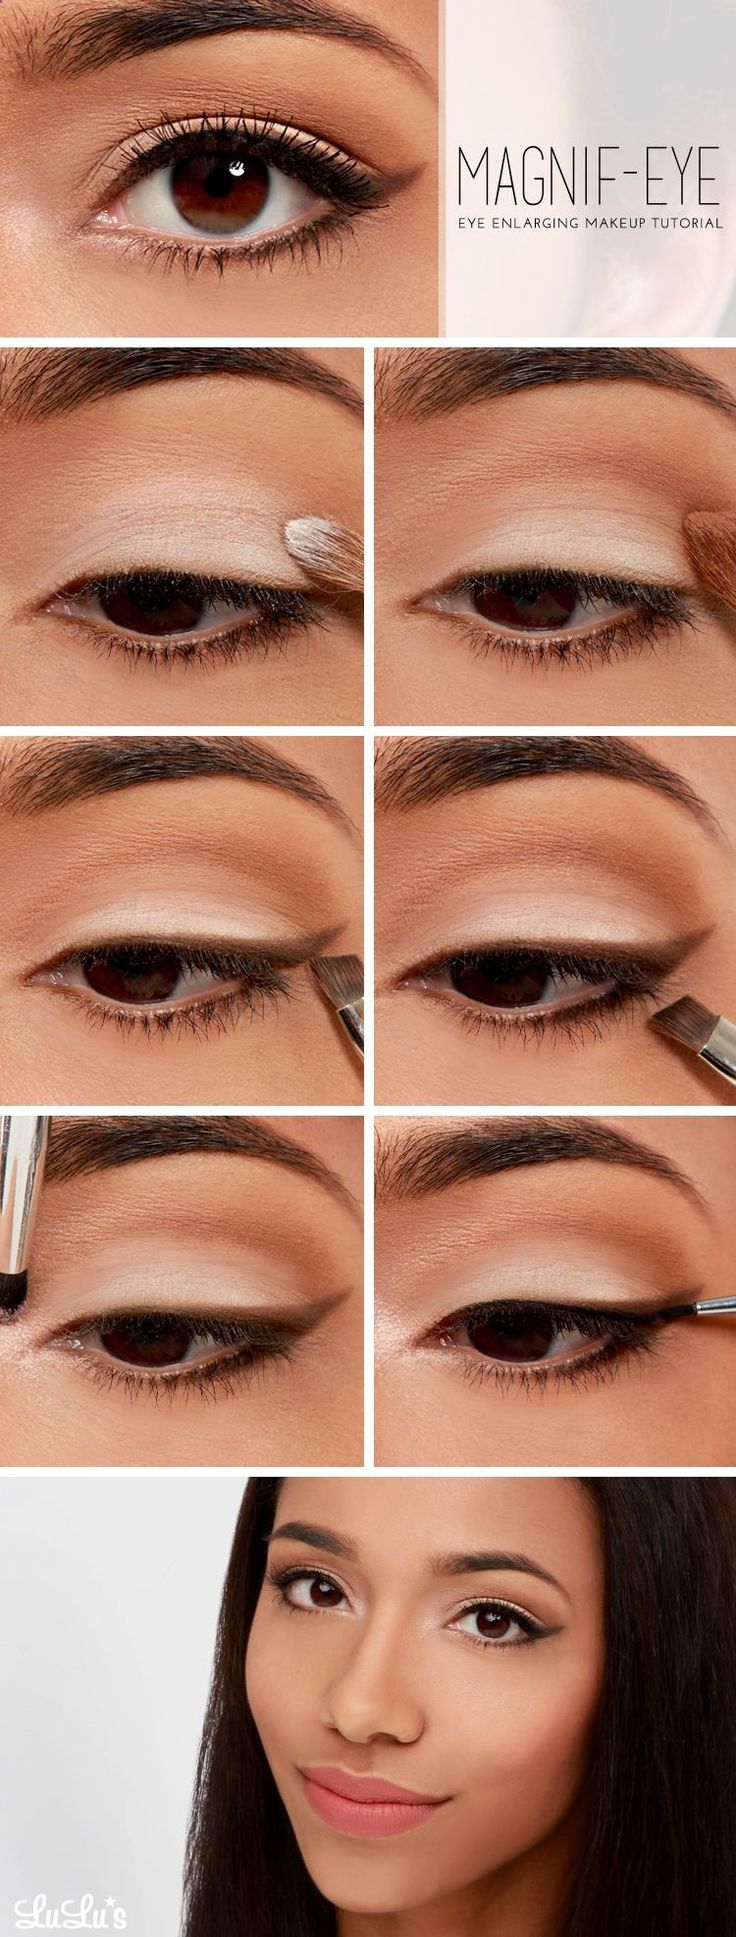 Makeup To Cover Skin Imperfections - NYC makeup is all about a subtle, yet bold look. Make your peepers pop with this eye enlarging makeup tutorial! From Maybelline to Revlon and more, get all the best makeup from the closest Duane Reade to you. - the makeup to cover imperfections or spots that could have skin shows. In this opportunity we will delve into the makeup itself. This is ideal for scars, stretch marks or stains that we want to disguise, for a party or some event in which we ...